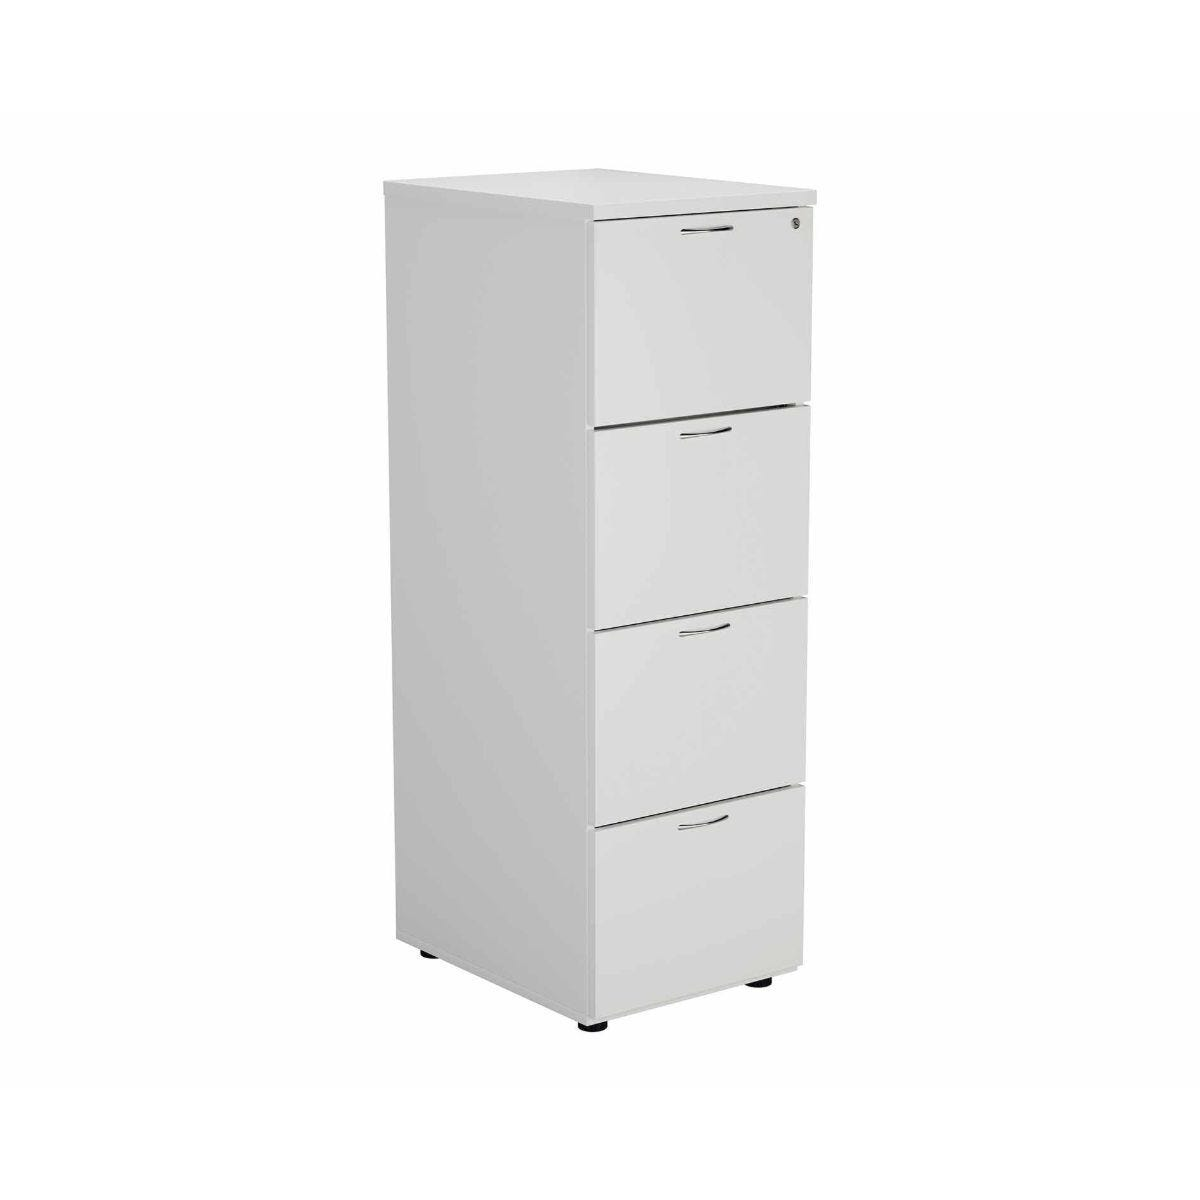 TC Office Deluxe 4 Drawer Filing Cabinet A4 Height 1365mm White